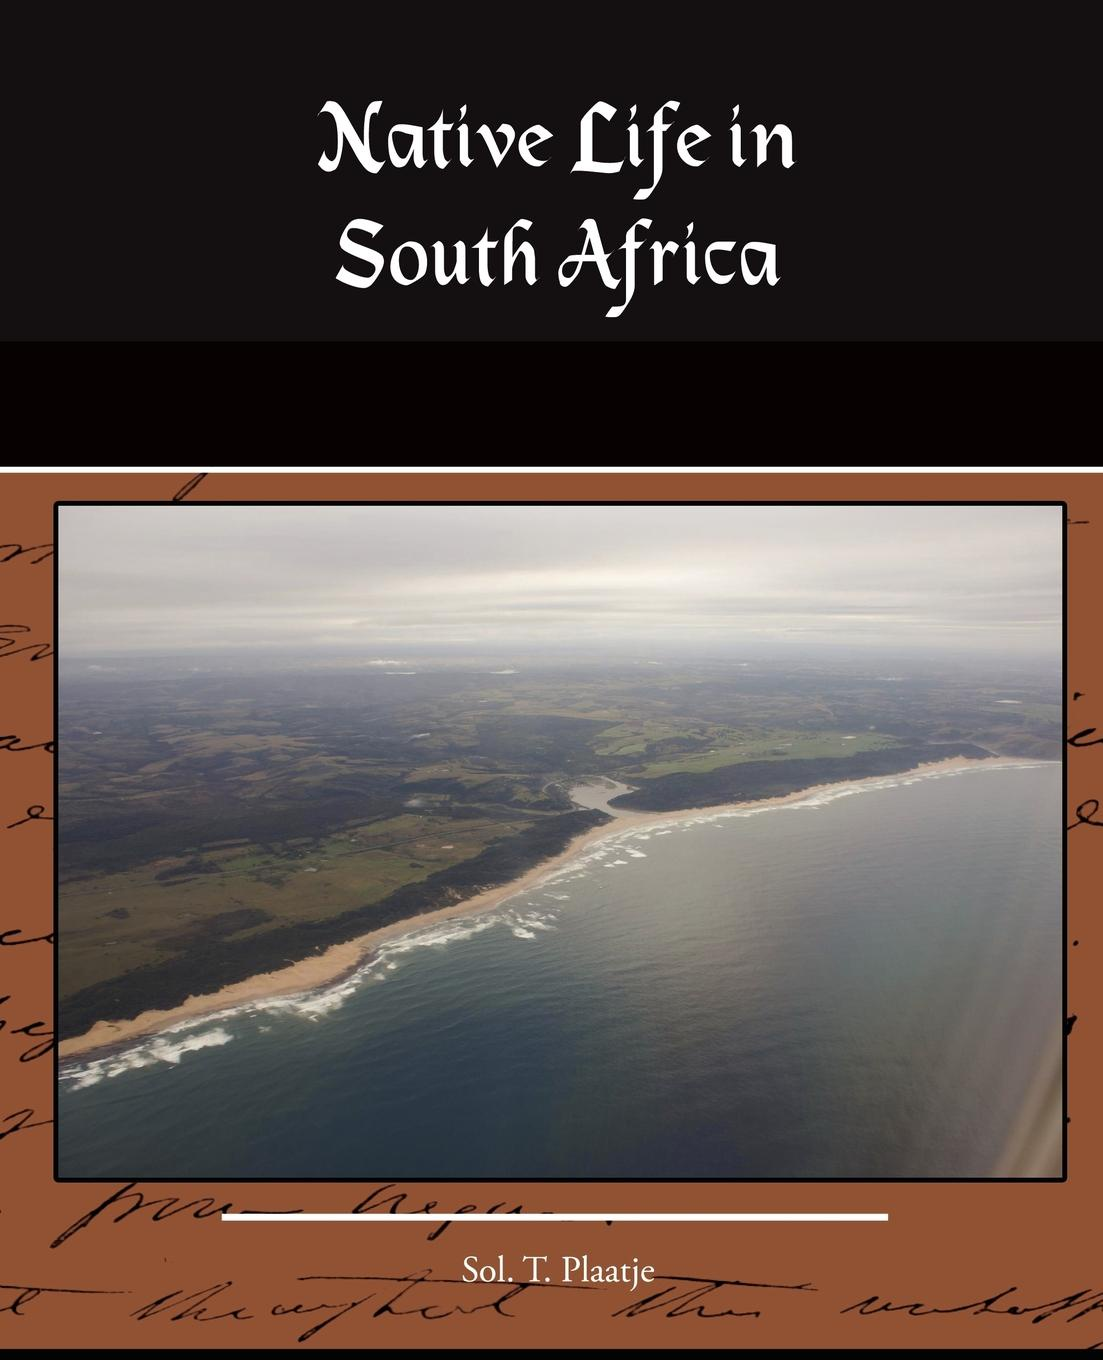 Sol T. Plaatje Native Life in South Africa south africa 07